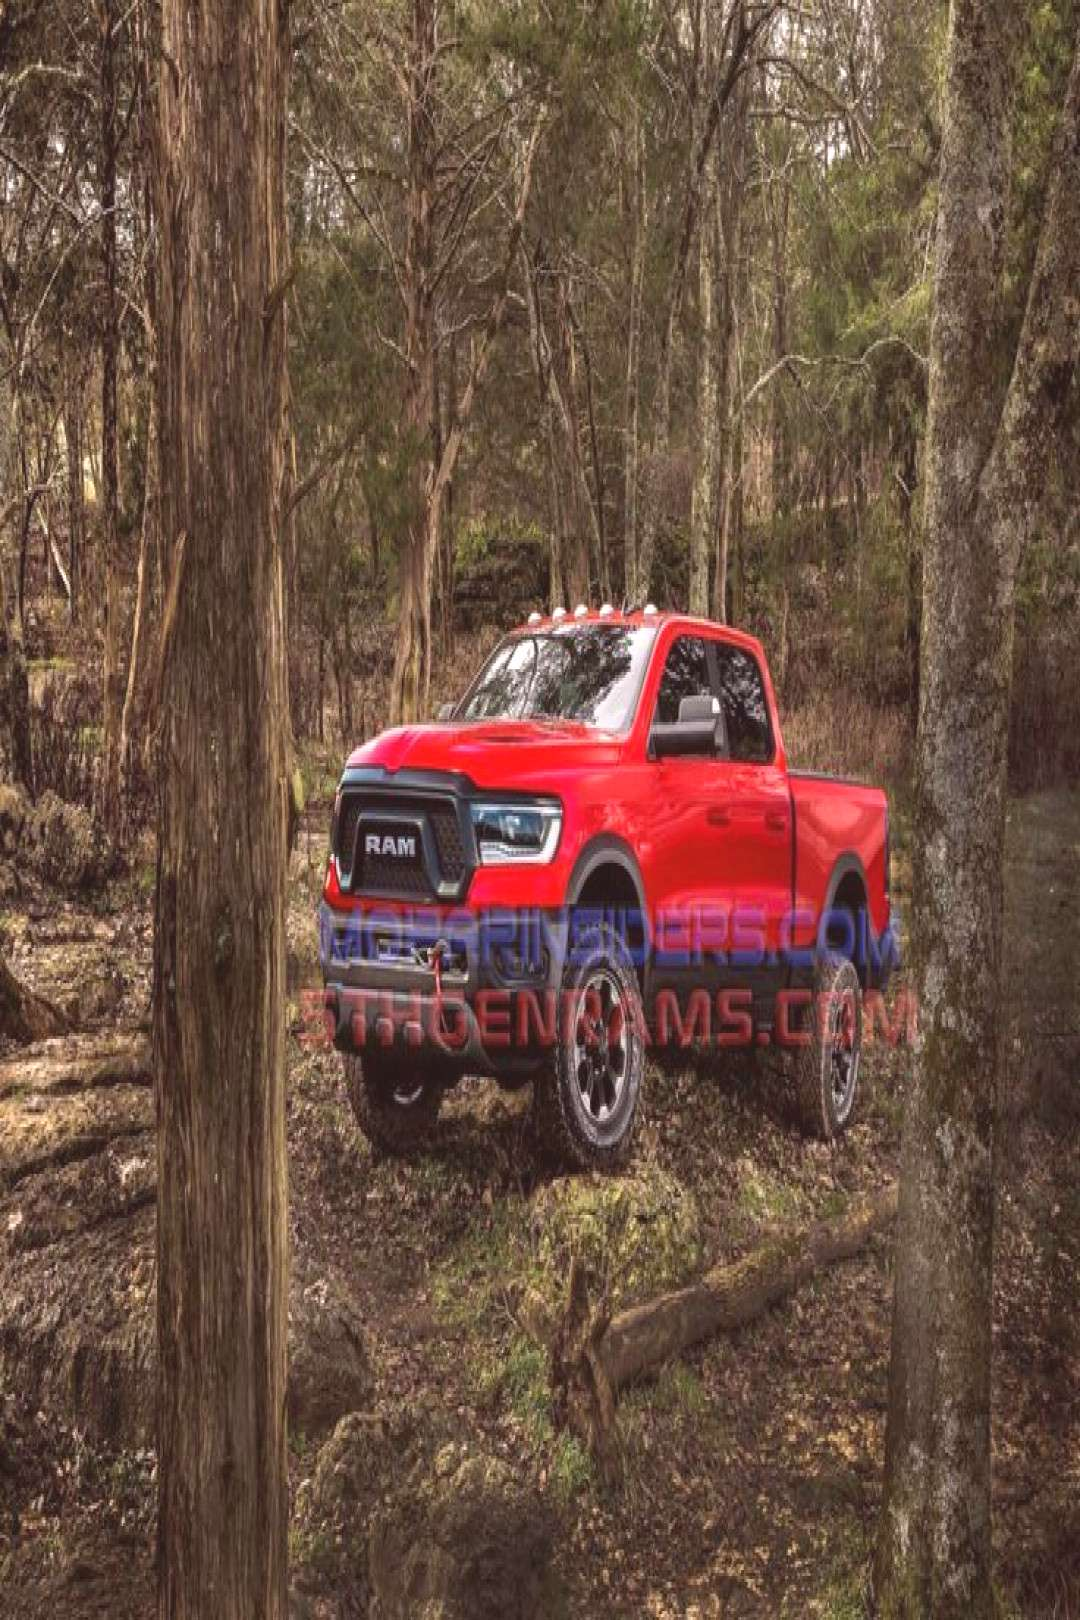 Dodge Power Wagon 2020 Trucks Dodge power wagon 2020 - dodge power wagon 2020 - dodge power wagon 2